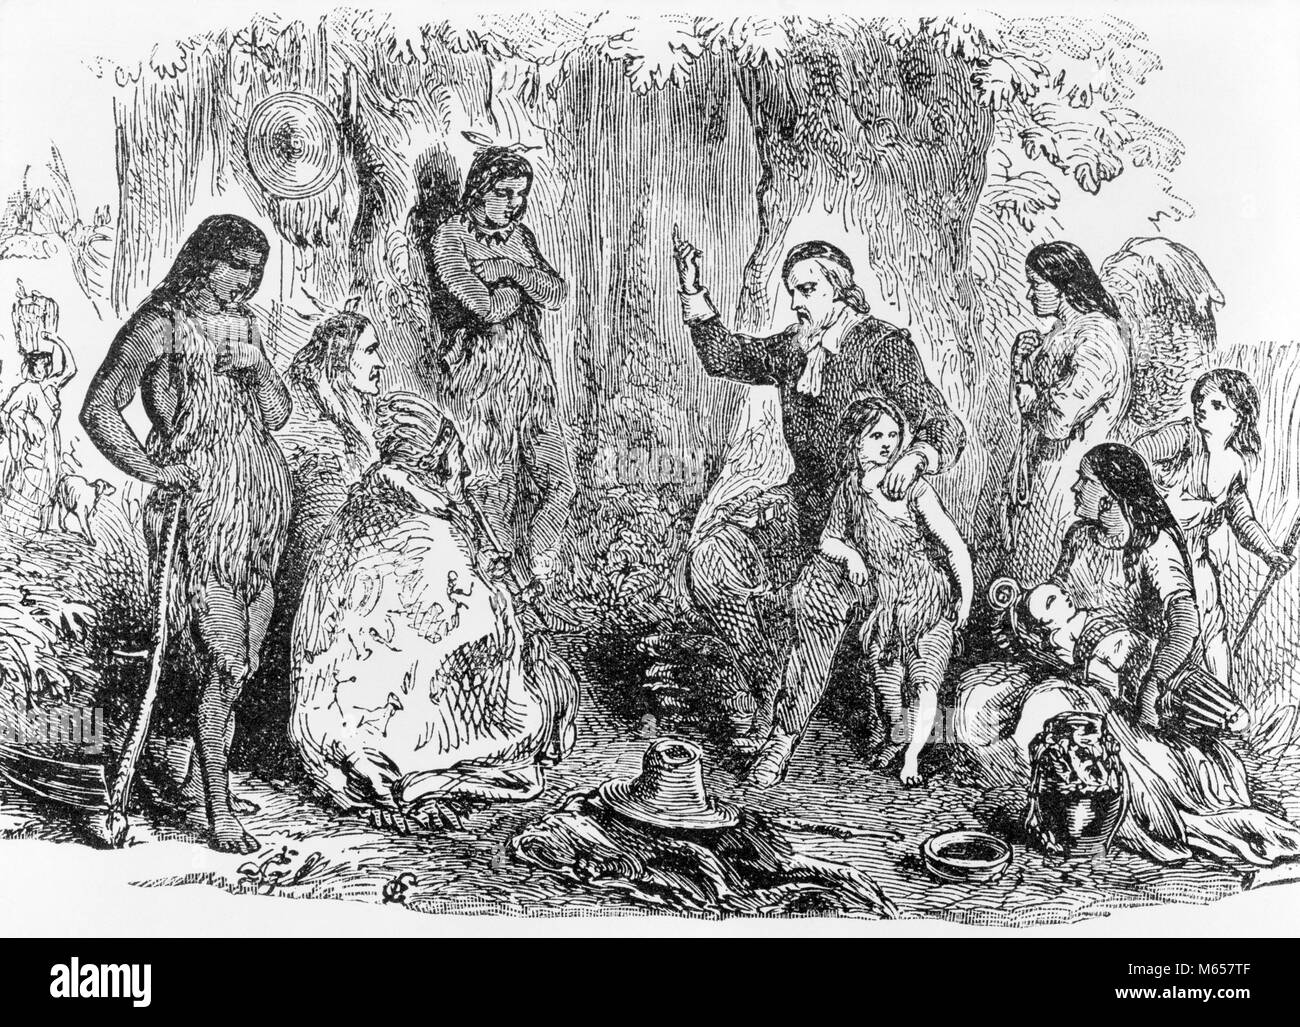 1600s ENGRAVING OF JOHN ELIOT PREACHING TO THE INDIANS OF MASSACHUSETTS KNOWN AS THE APOSTLE TO THE INDIANS - i7503 - Stock Image